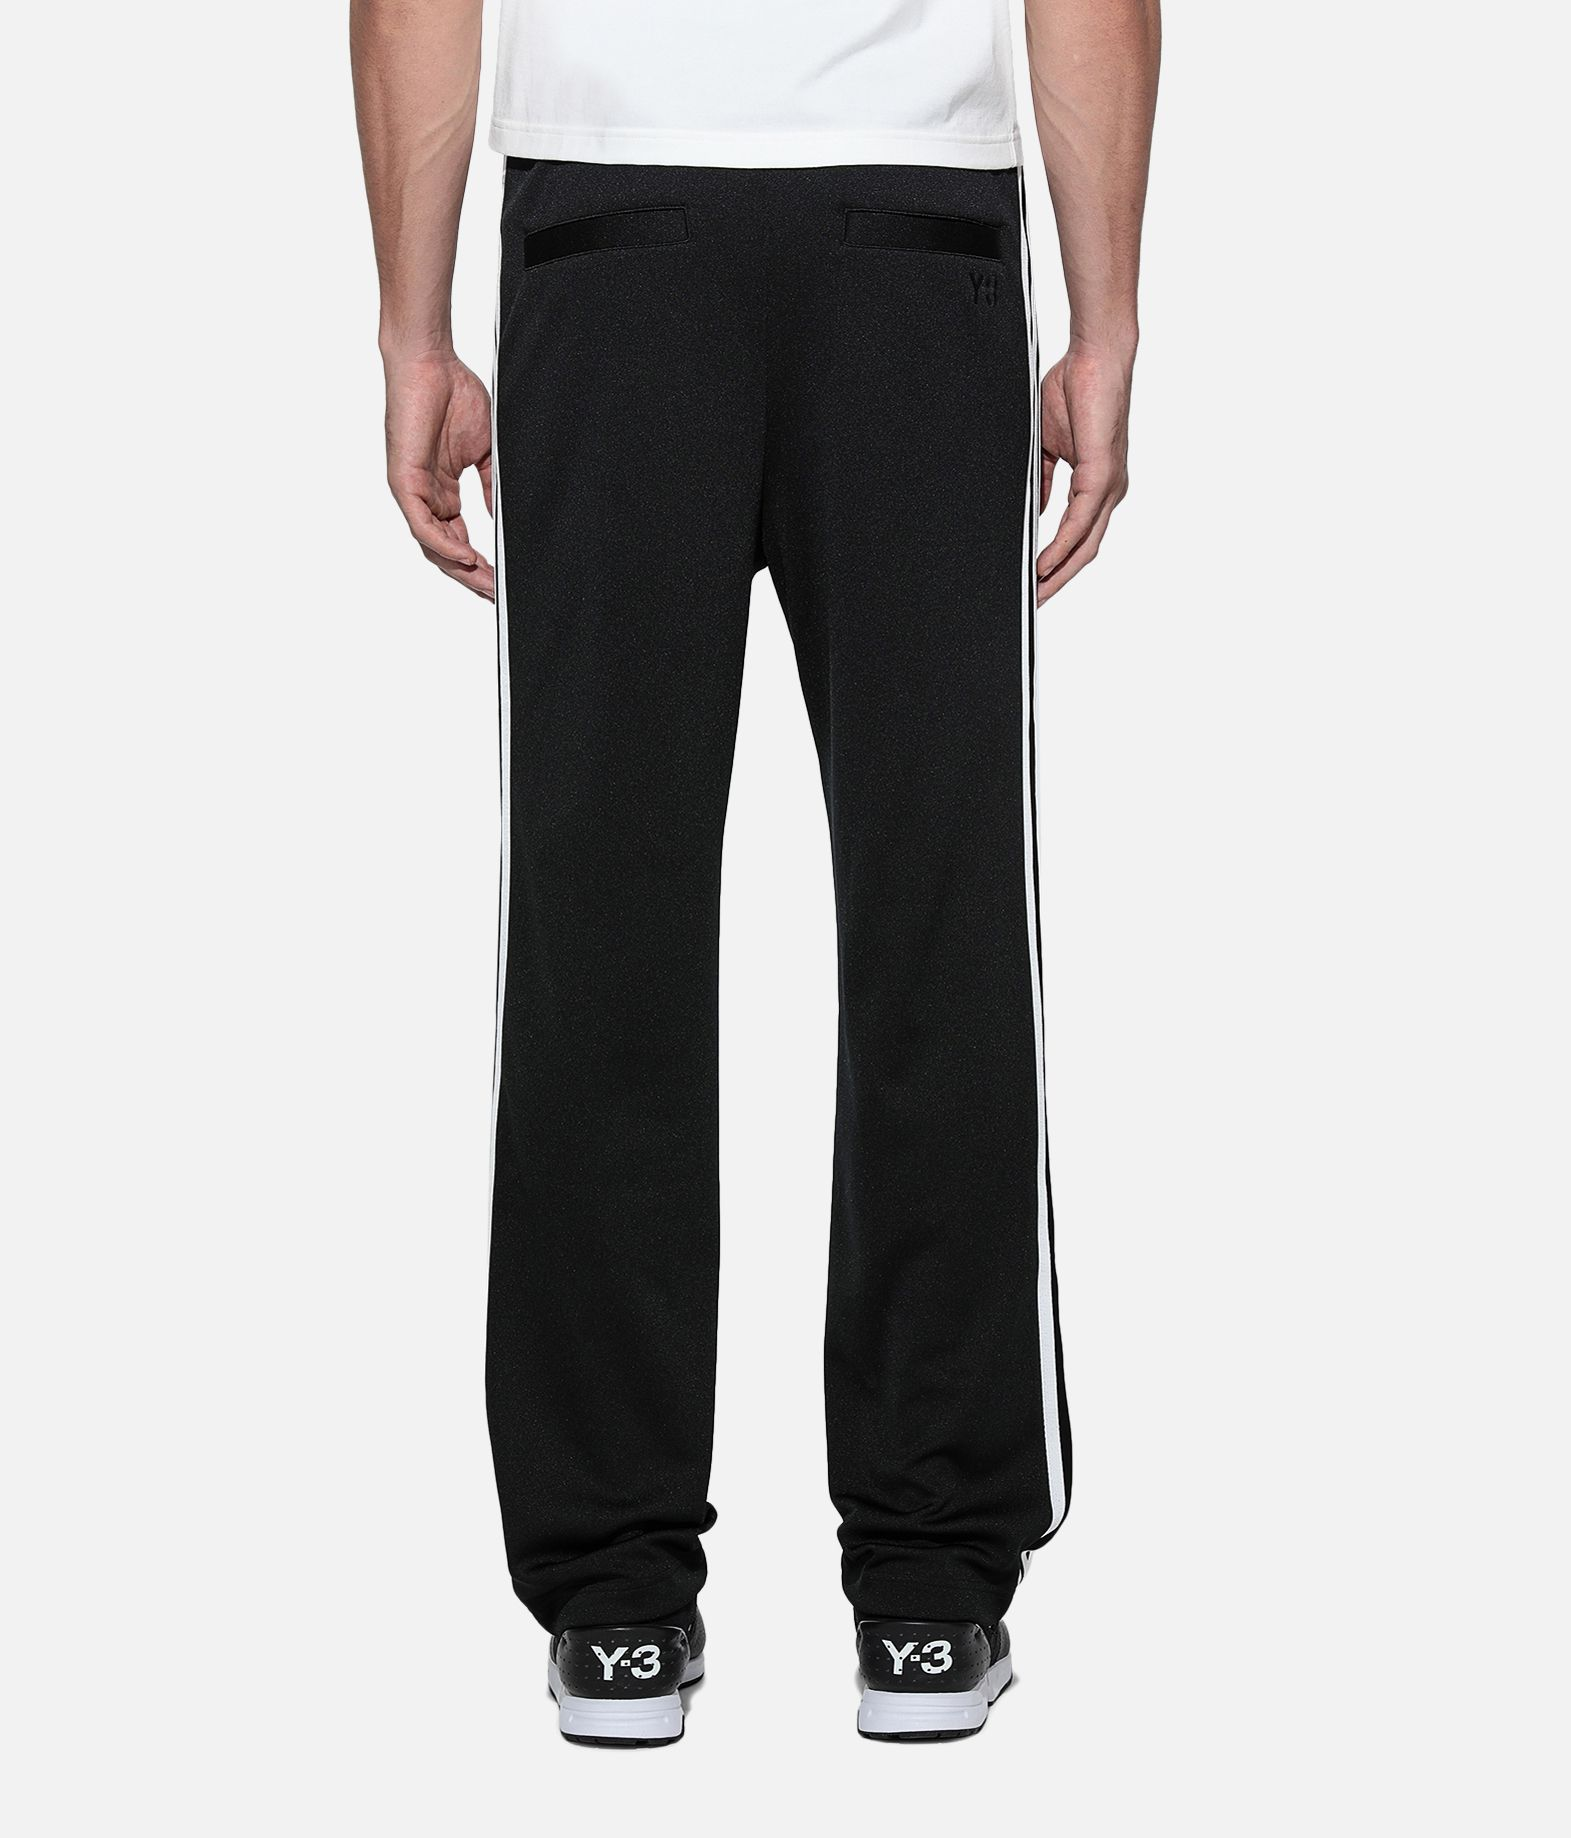 Y-3 Y-3 3-Stripes Track Pants Tracksuit pants Man d